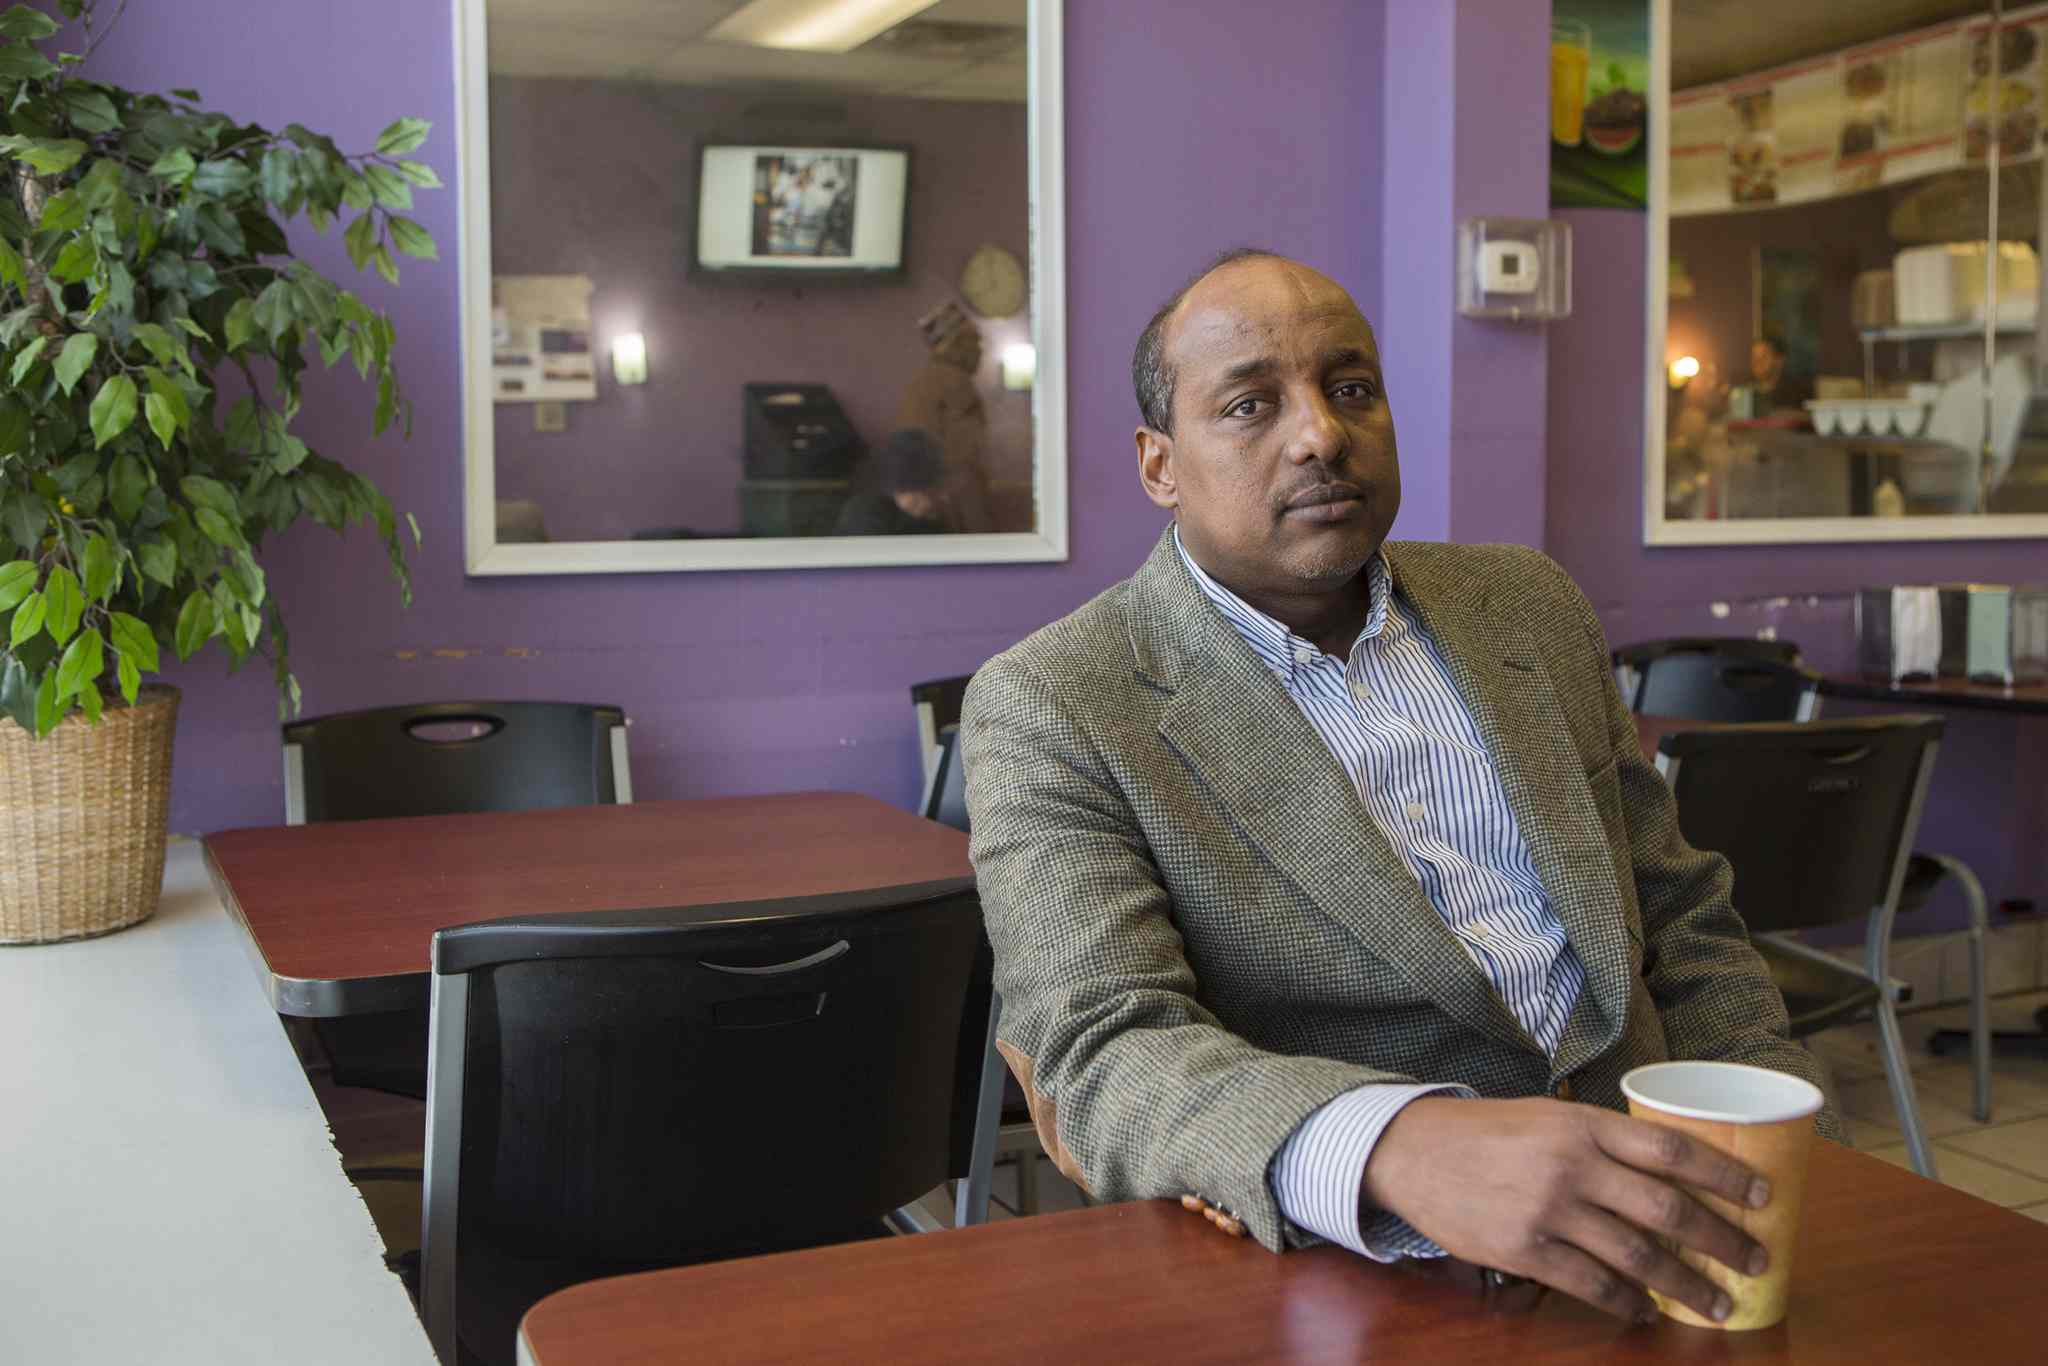 """""""The word on the street right now is not to leave the country, because maybe you'll not be able to come back. You simply don't know what this administration will do. You're playing a different ball game,"""" says Somali community activist Omar Jamal."""